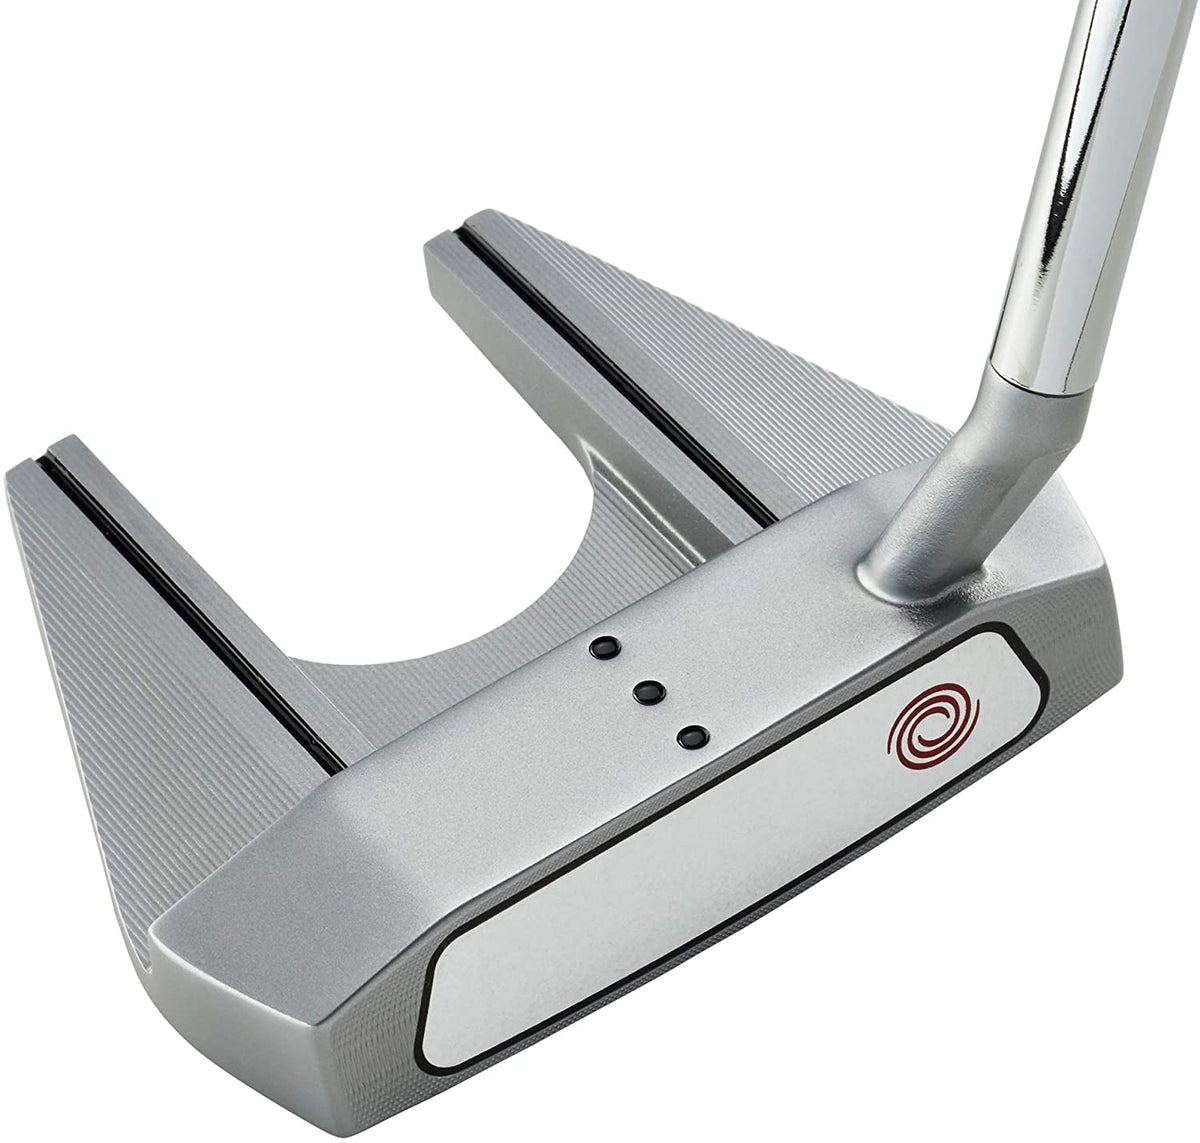 Odyssey White Hot OG Seven S Putter - Steel shaft